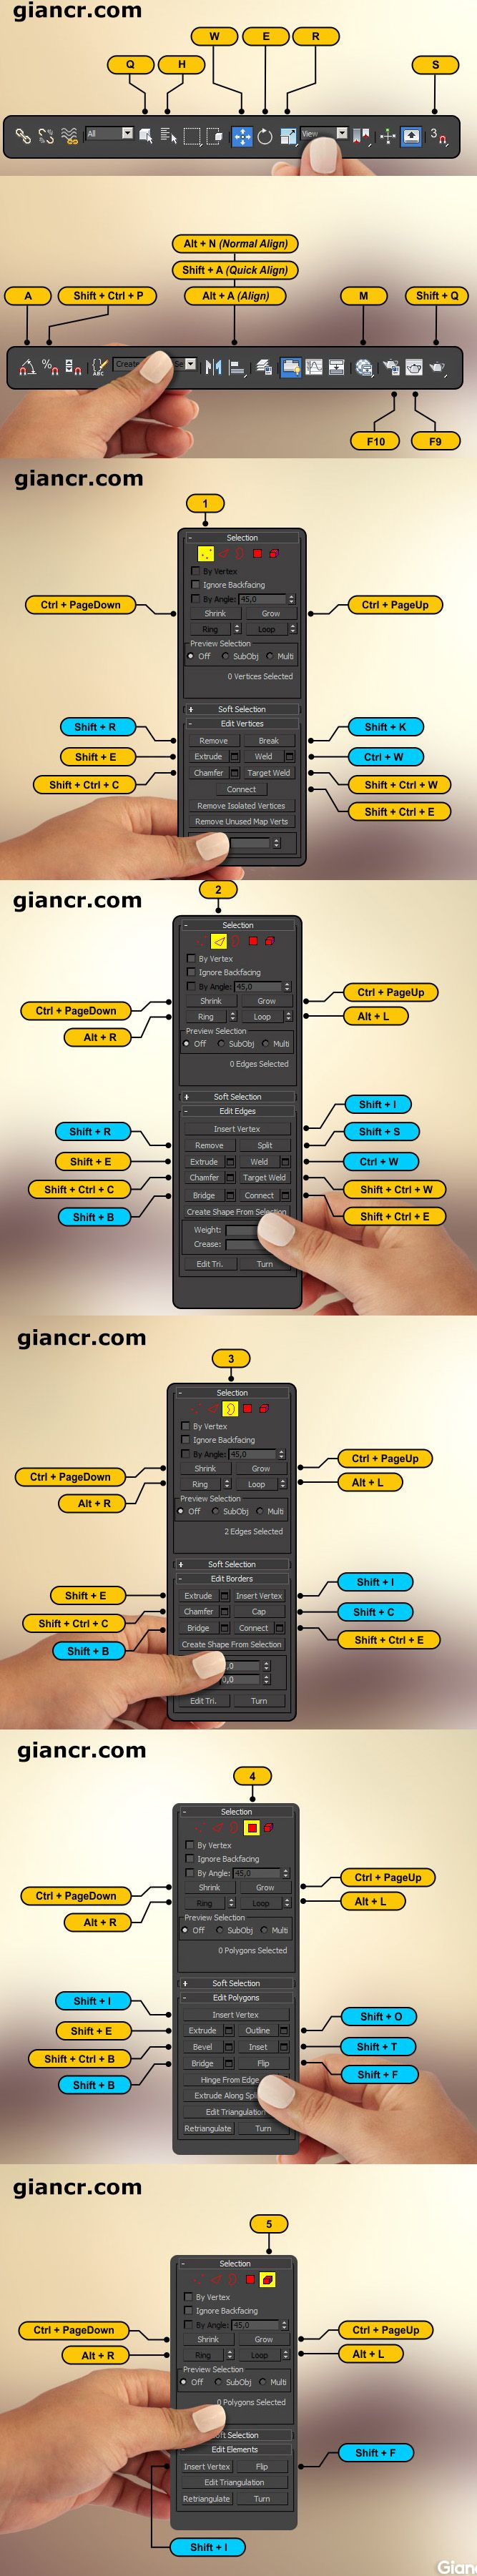 http://giancr.com shortcuts, tutorials, resources at > http://giancr.com